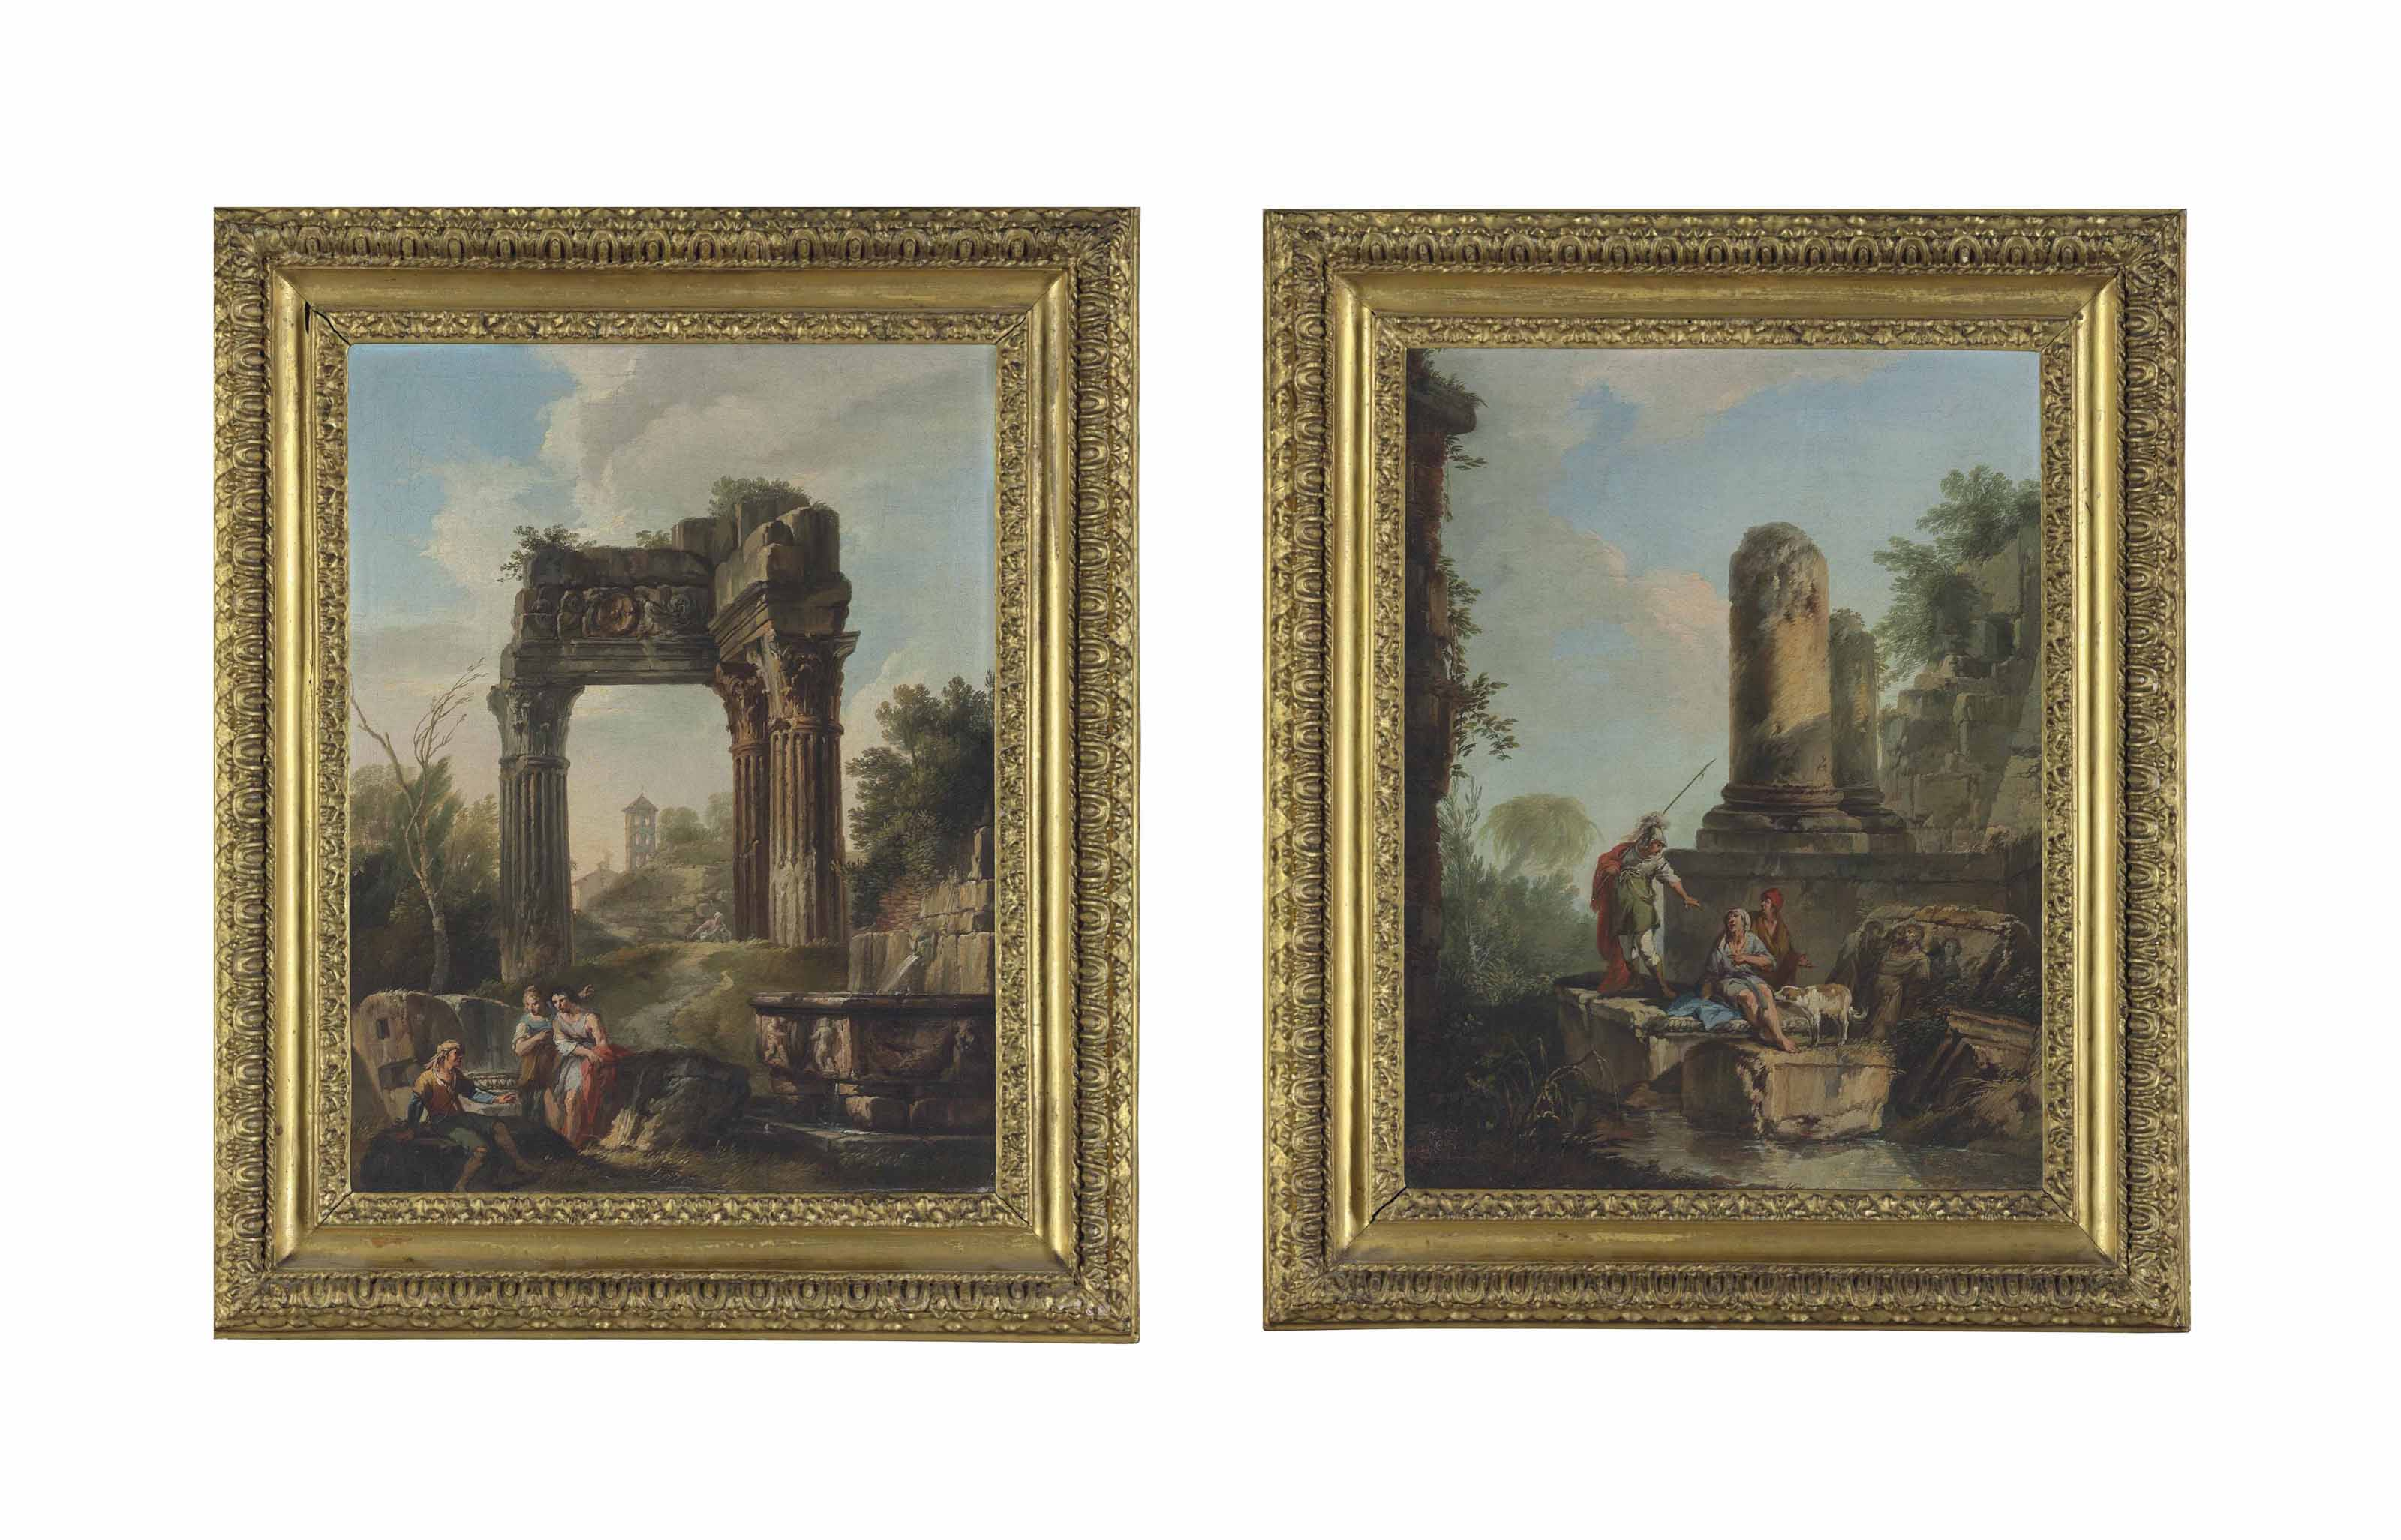 A capriccio with classical ruins and figures resting by a fountain in the foreground; and A capriccio with classical ruins and a centurion conversing with two figures, with a dog